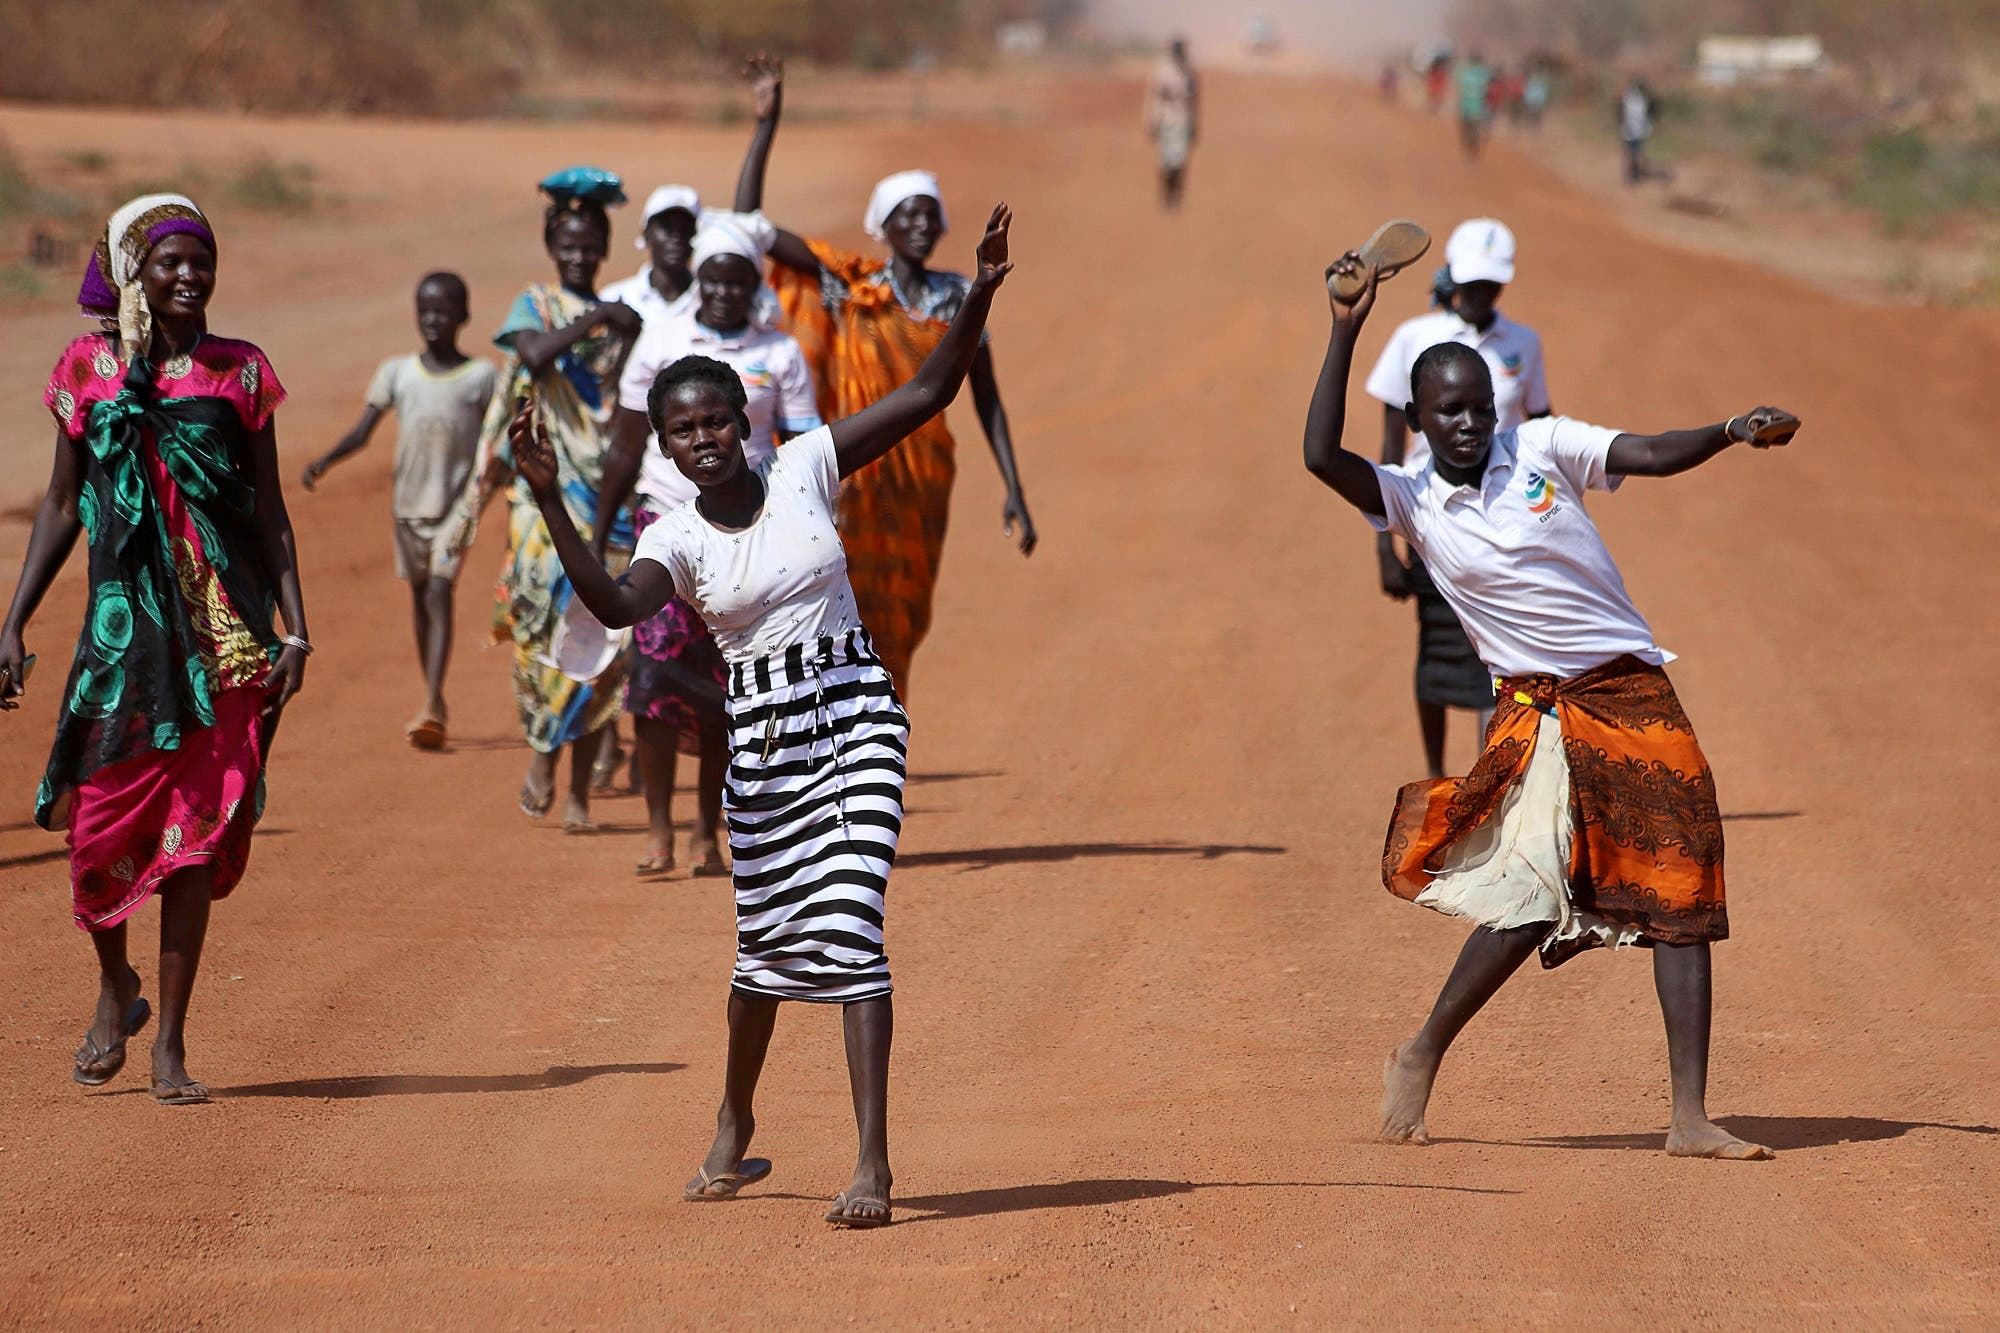 South Sudanese women dance during a ceremony marking the restarting of crude oil pumping at the Unity oil fields in South Sudan on January 21, 2019. (Reuters)